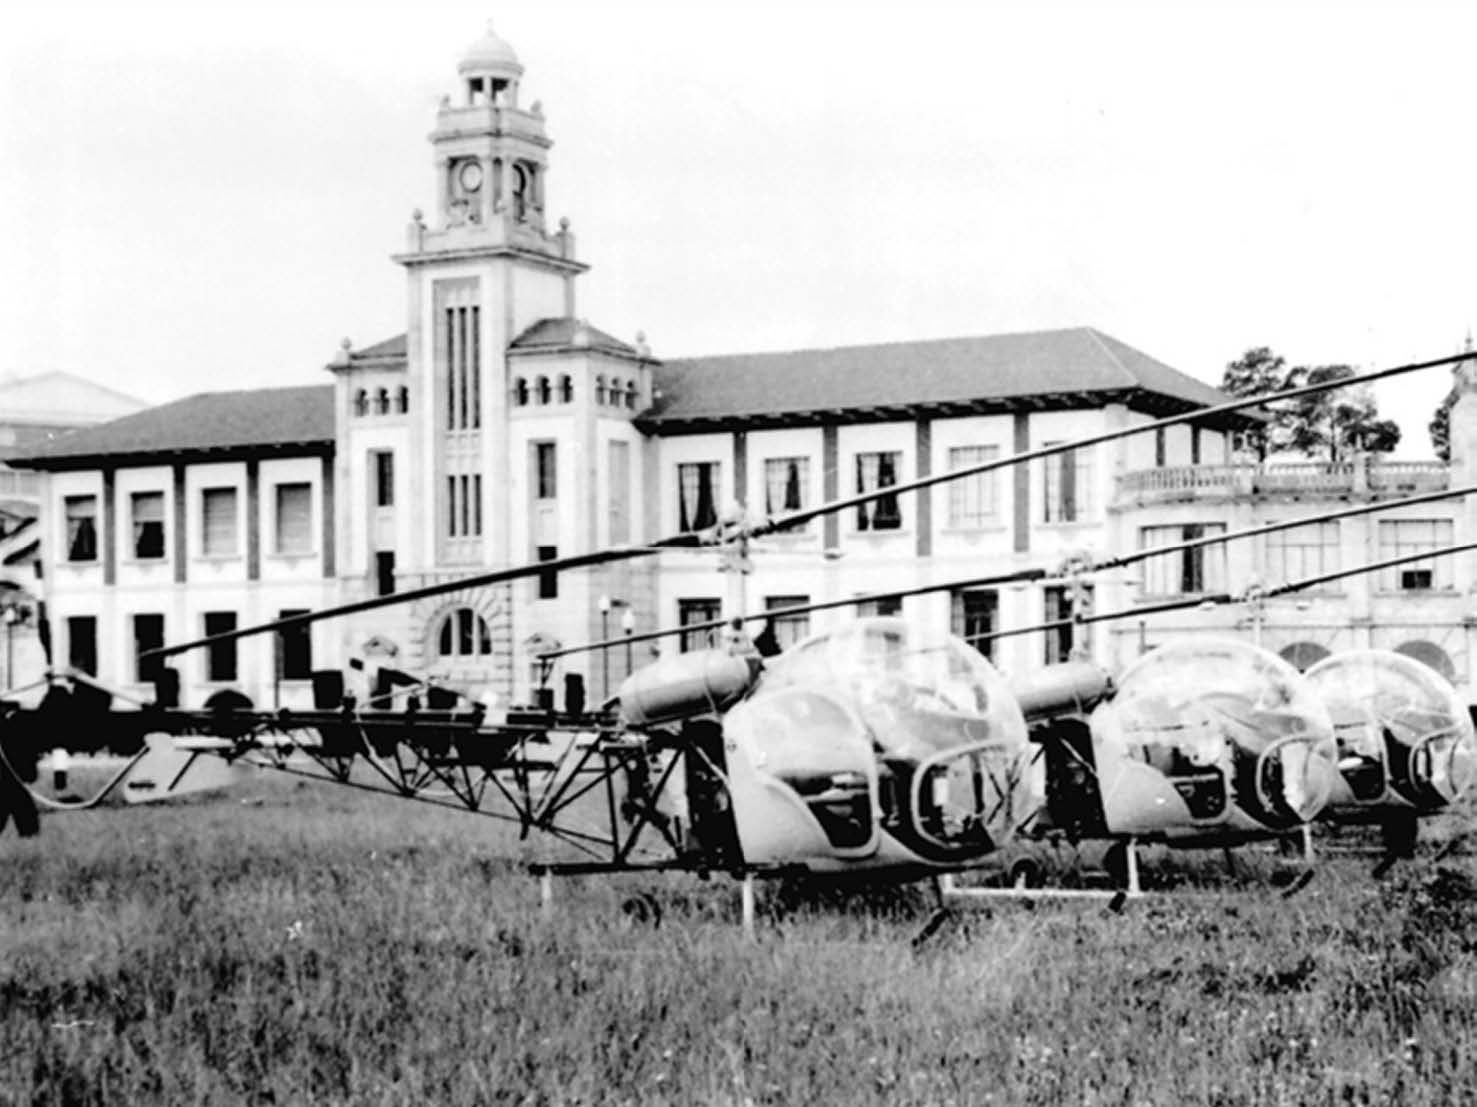 The first Bell-47G helicopters at the Naval Academy